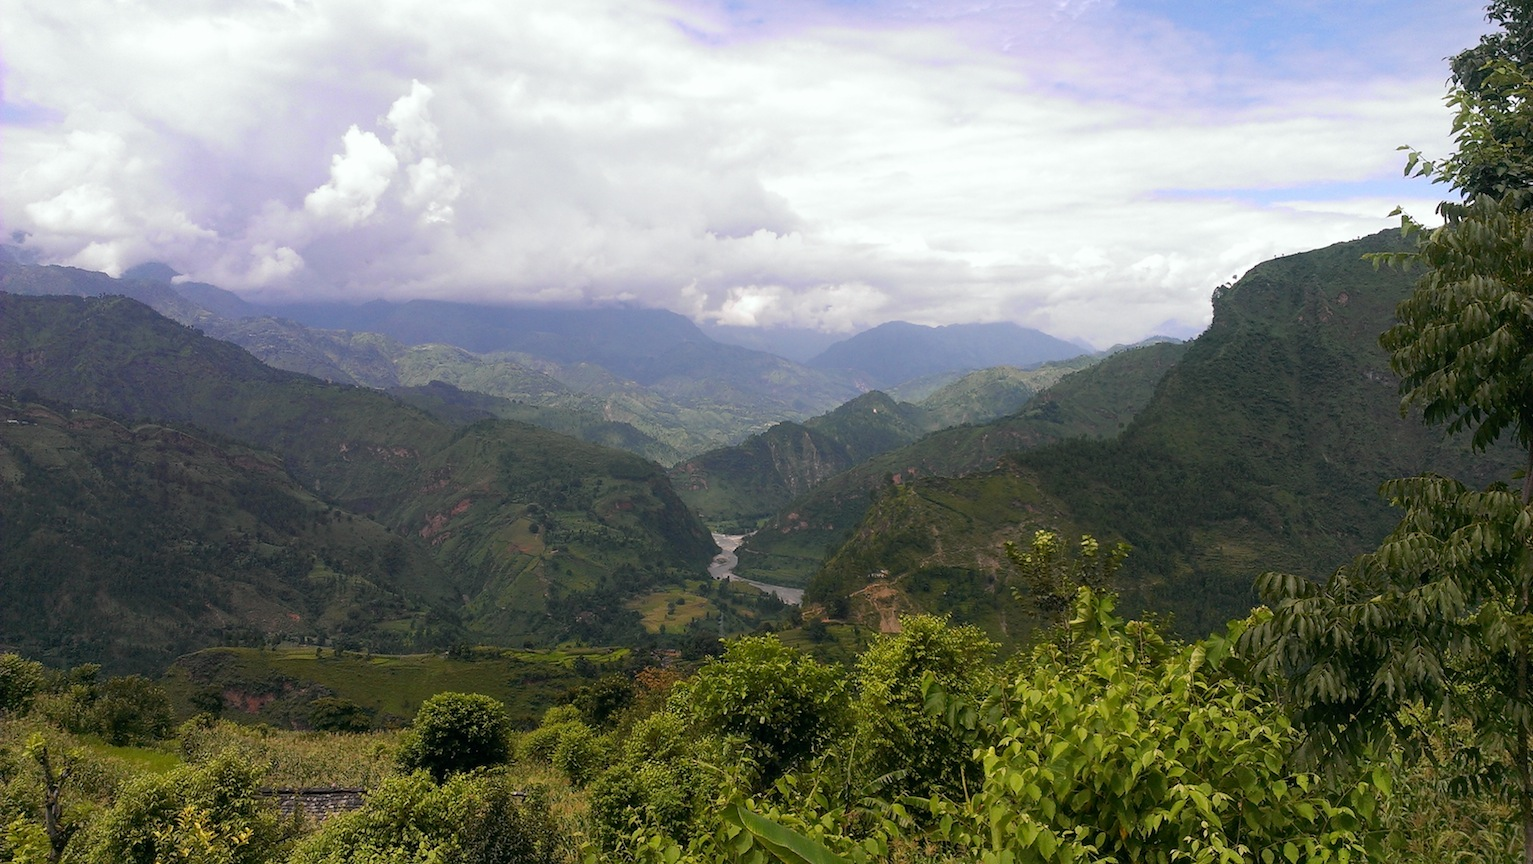 Some photos from Far Western Nepal